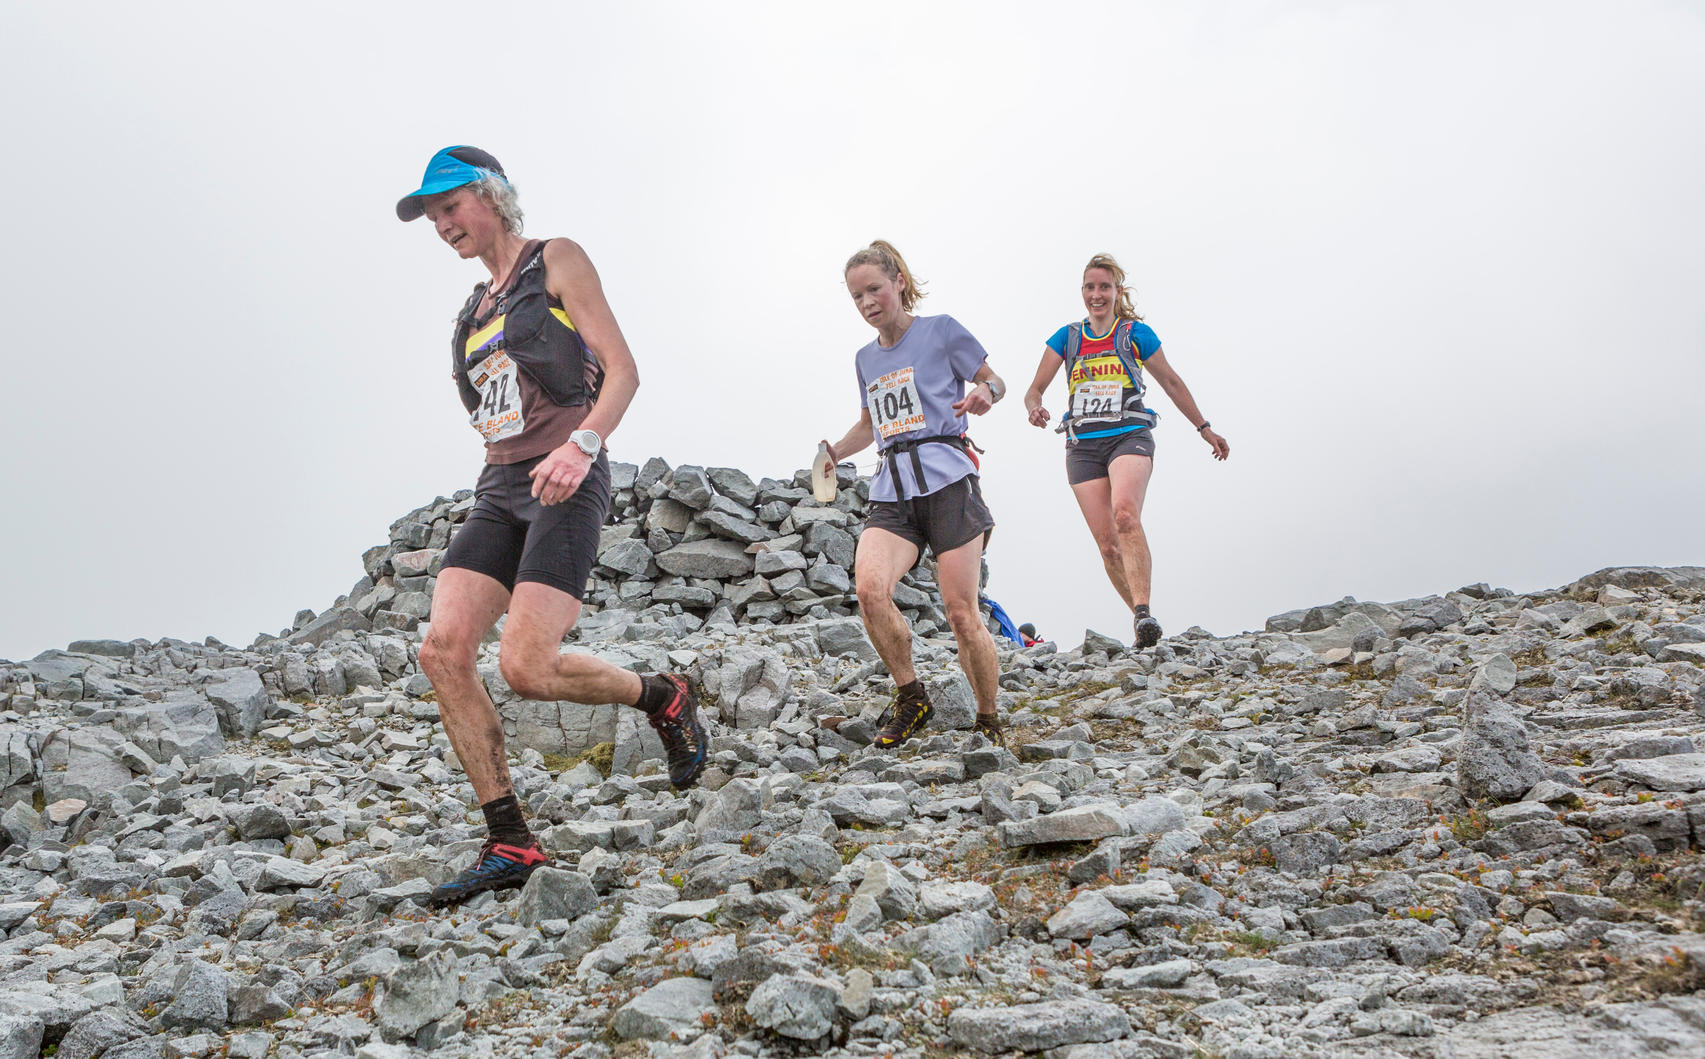 G2EACA Jura, UK. 28th May, 2016. The Jura Fell Race is one of the toughest British Hill Race challenges with a 28km course taking in 7 mountain summits and a total rise of 2370m. Taking place on the Scottish island of Jura and sponsored by the Isle of Jura Distillery, over 250 runners took part in the event with the winner Finlay Wild completing the course in 3 hours 9 minutes and 53 seconds. The Women?s race was won by Jasmin Paris in 3 hours 40 minutes and 59 seconds.  Pictured: Runners entering the first checkpoint at Dubh Beinn © Richard Dyson/Alamy Live News